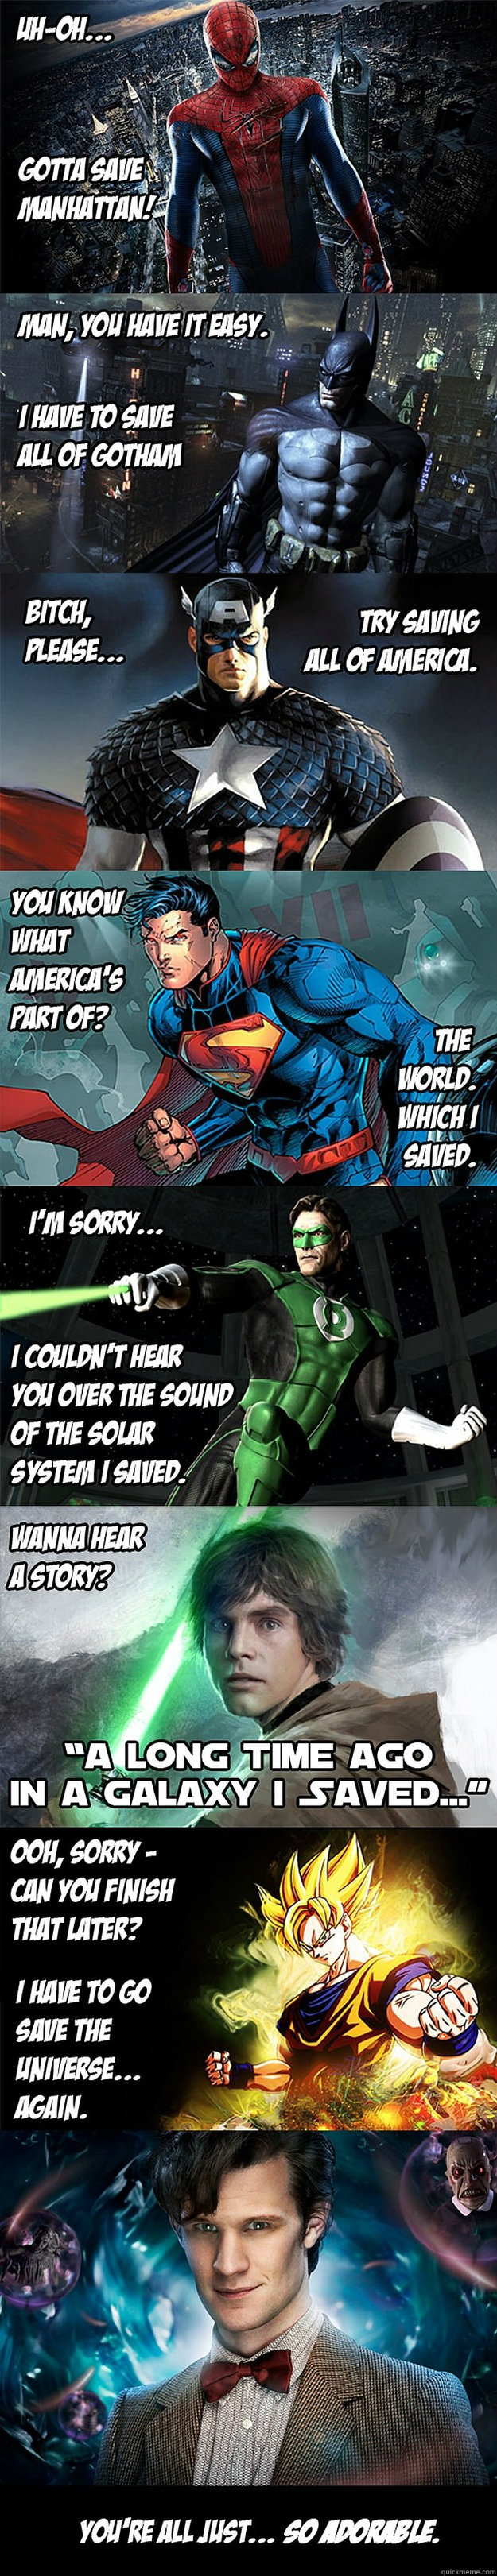 superheroes, saving, city, state, country, planet, solar system, galaxy, universe, time